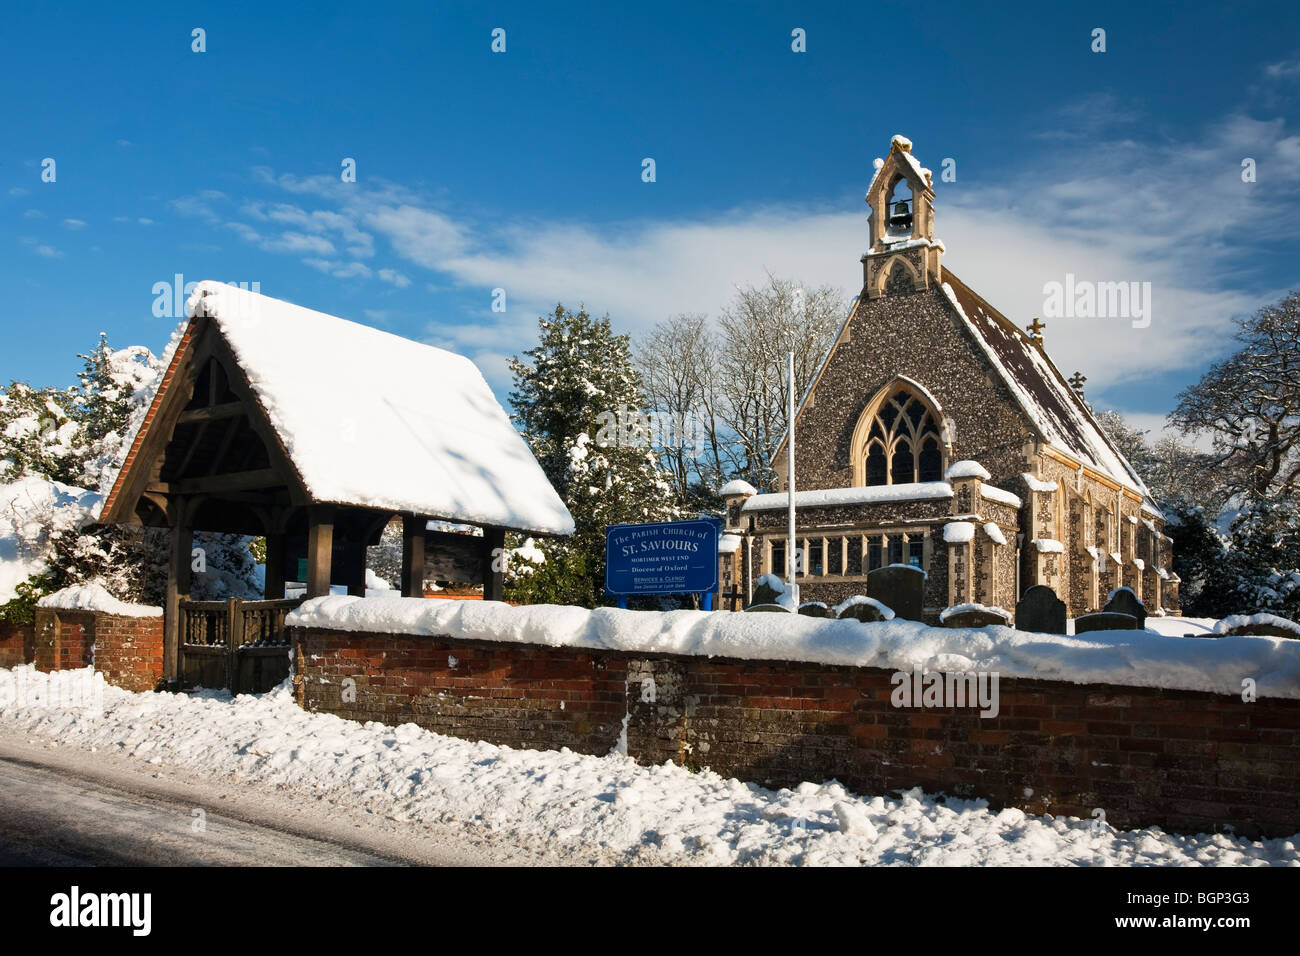 St Saviours Church in the snow, Mortimer West End, Reading, Berkshire, Uk - Stock Image